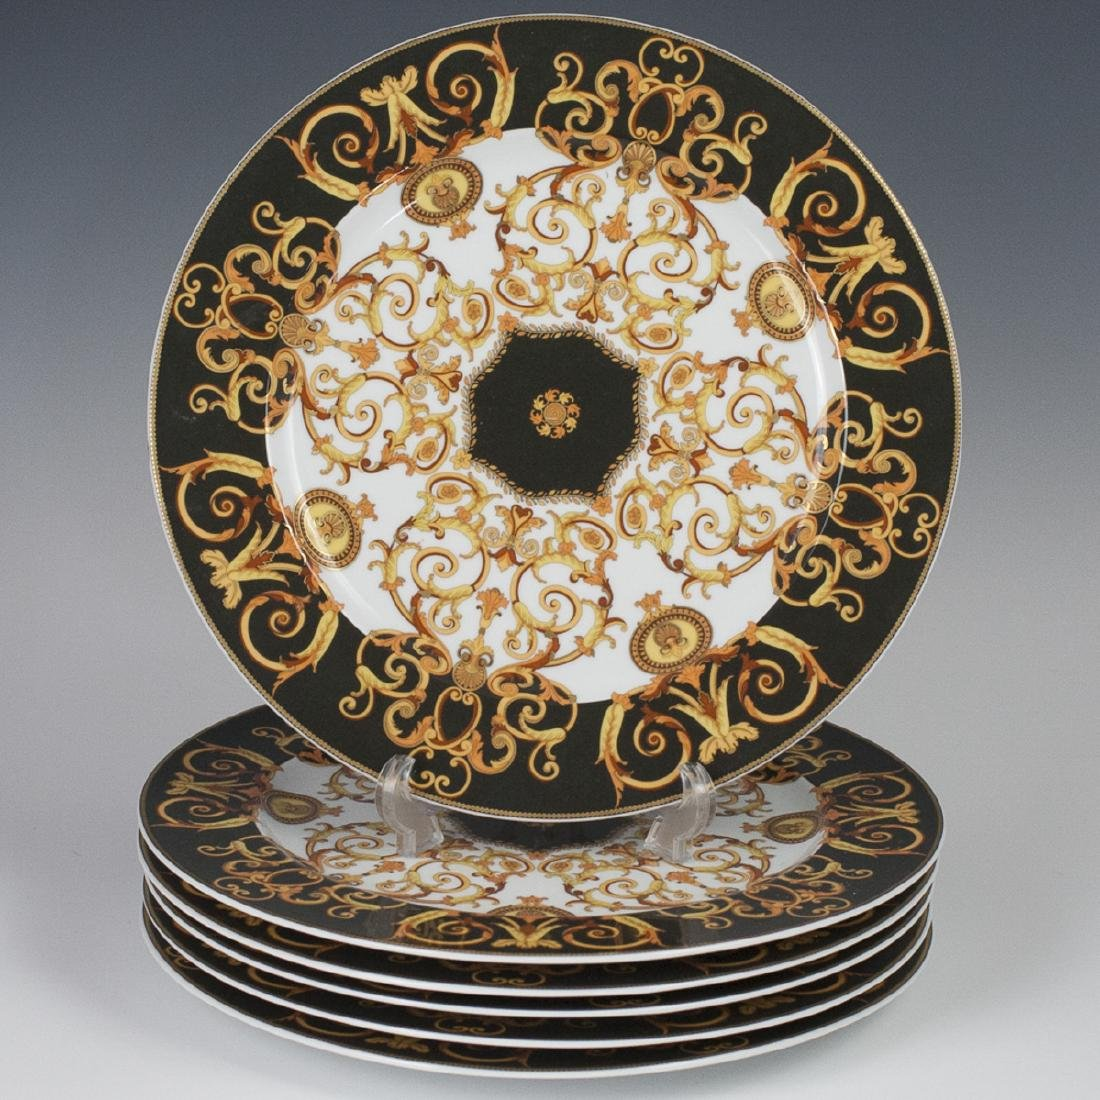 "Rosenthal Versace ""Barocco"" Porcelain Charger Plates"